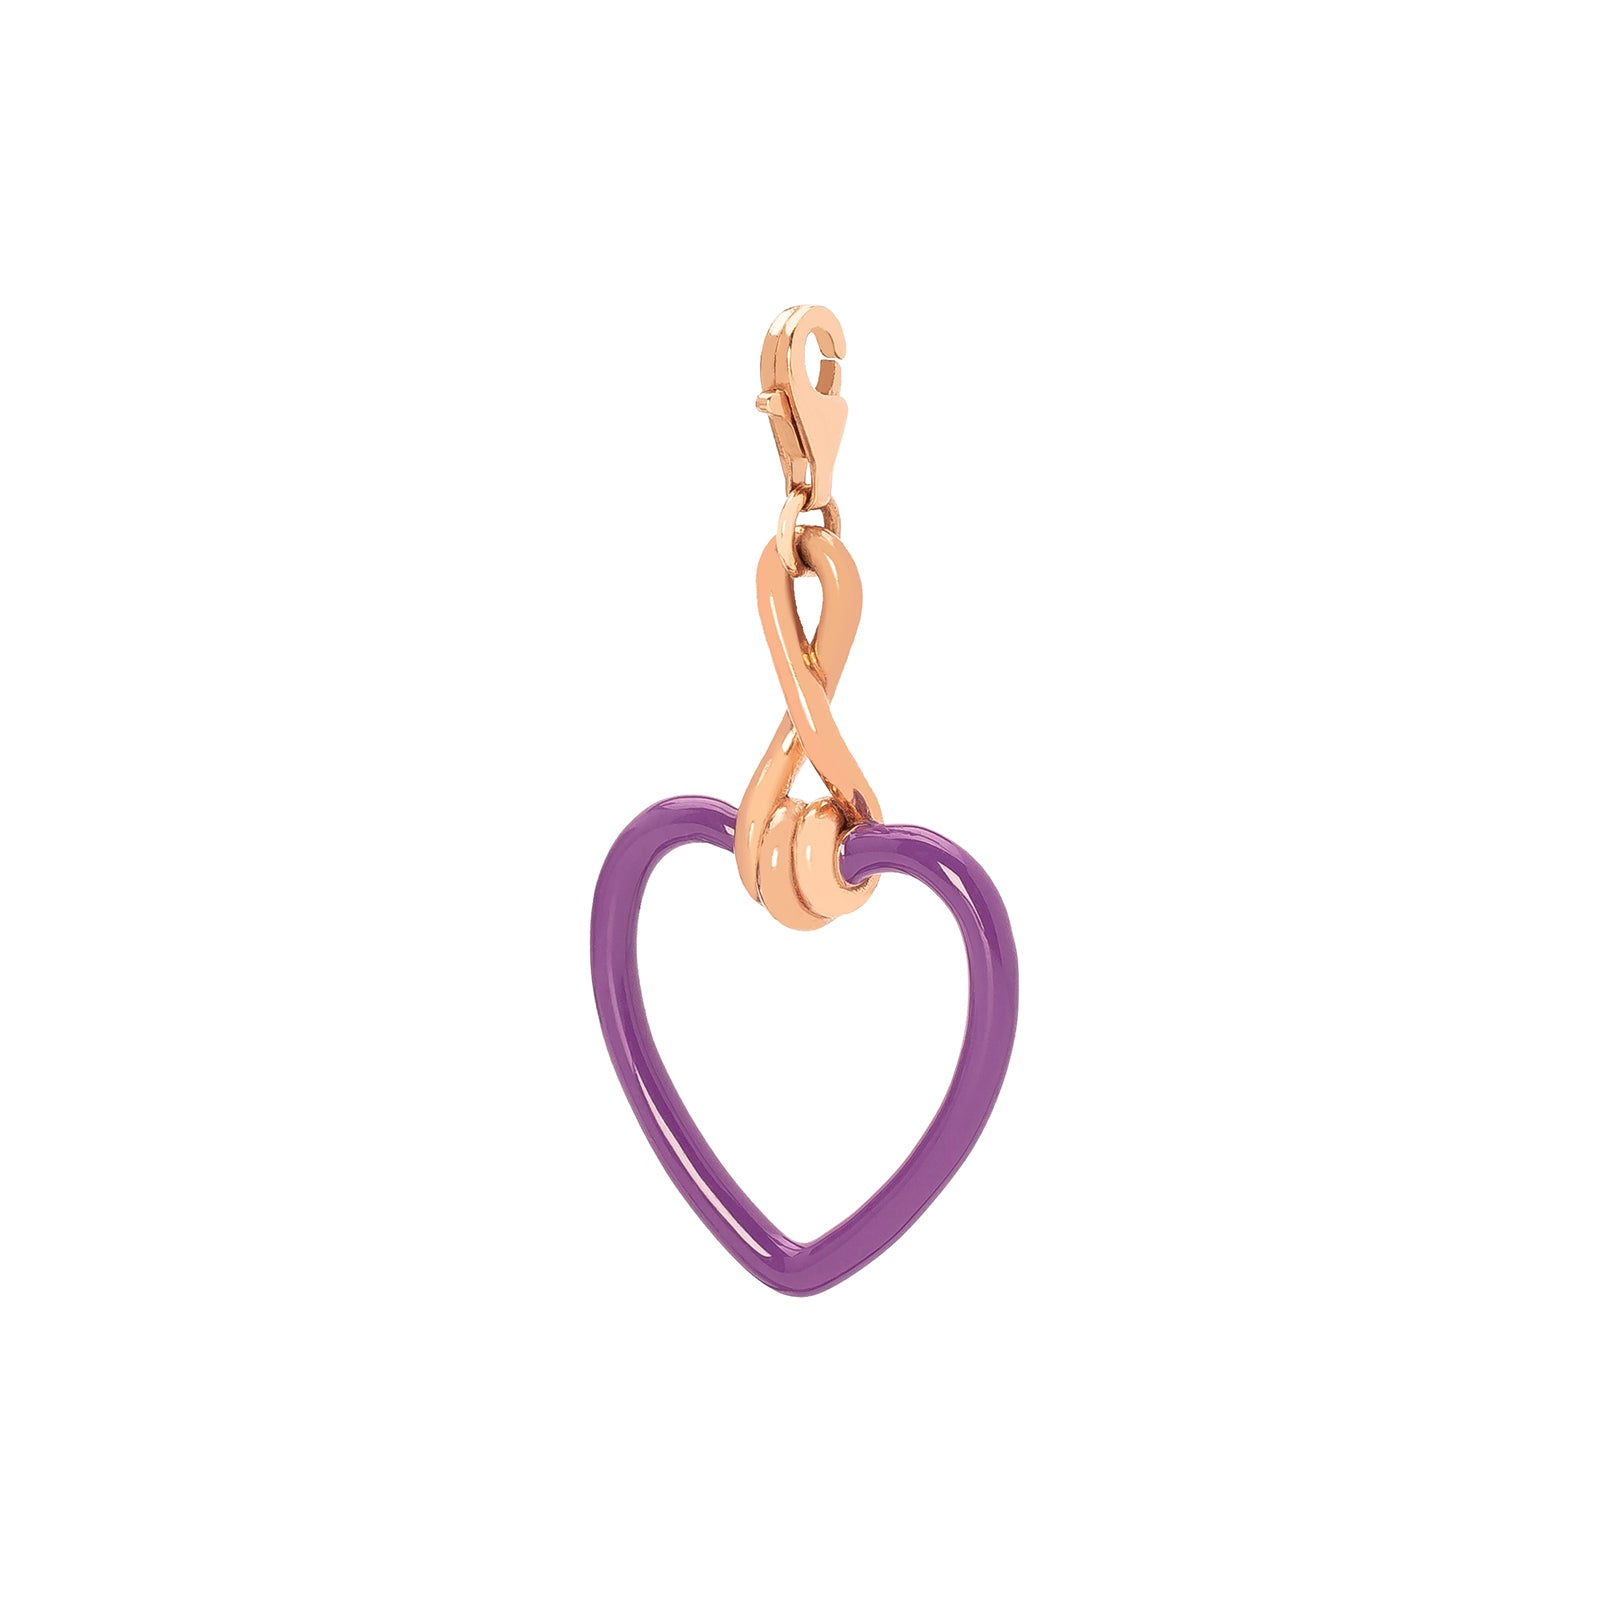 Bea Bongiasca Heart Charm - Purple Enamel - Charms & Pendants - Broken English Jewelry